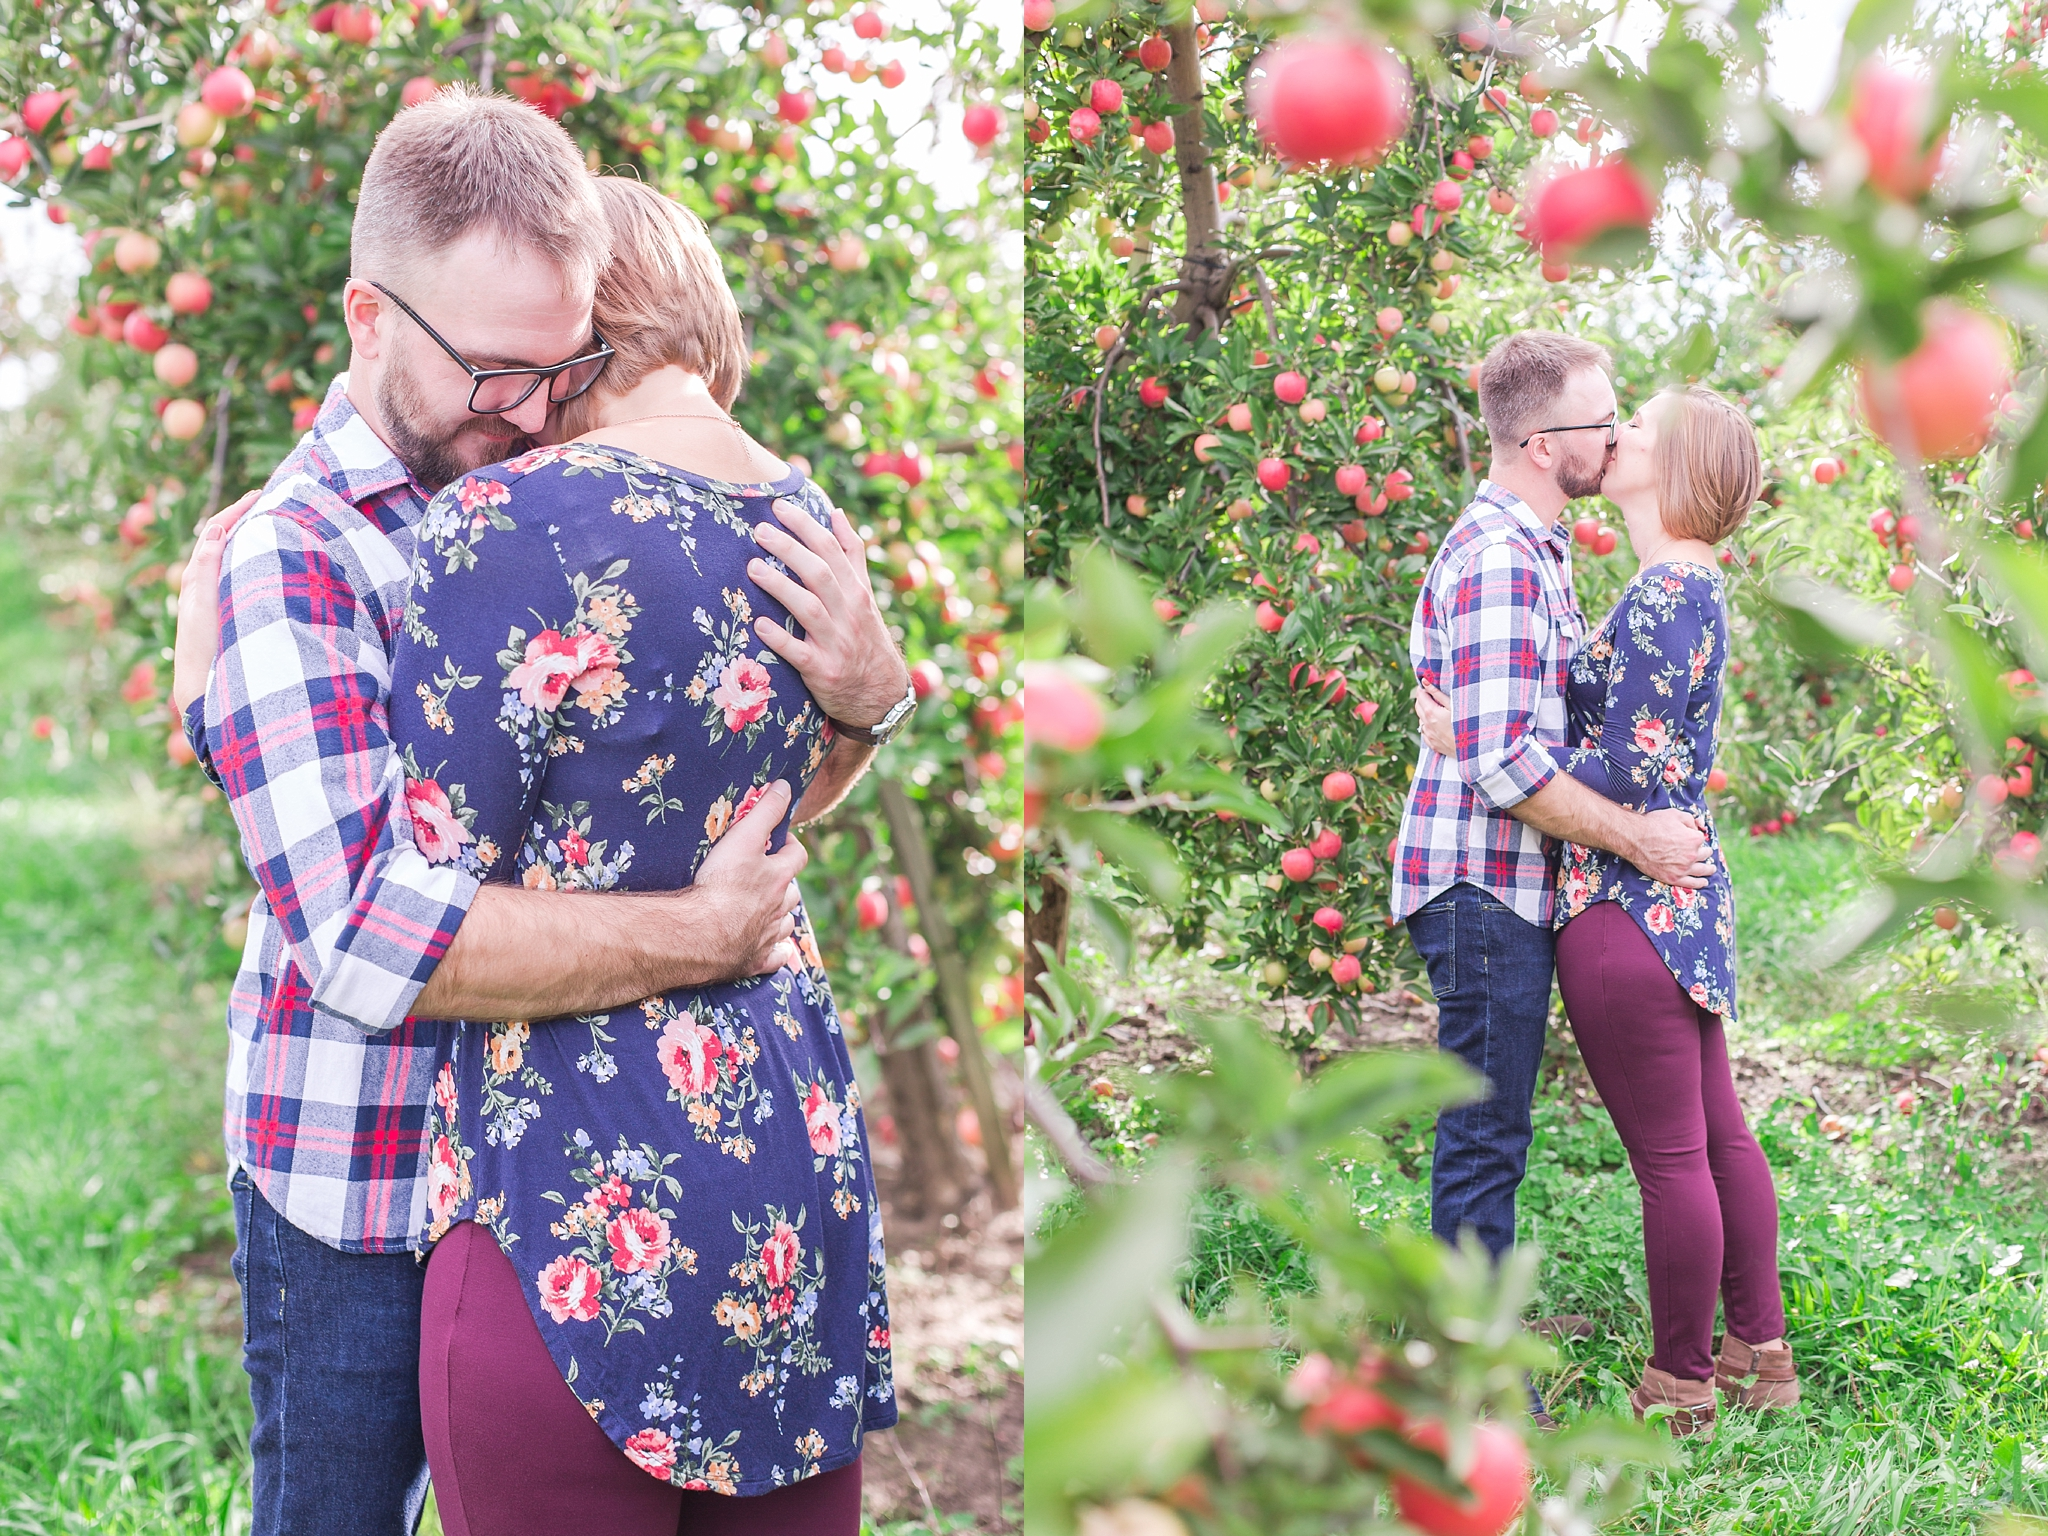 playful-fall-engagement-photos-at-hy's-cider-mill-ochard-in-bruce-township-michigan-by-courtney-carolyn-photography_0011.jpg